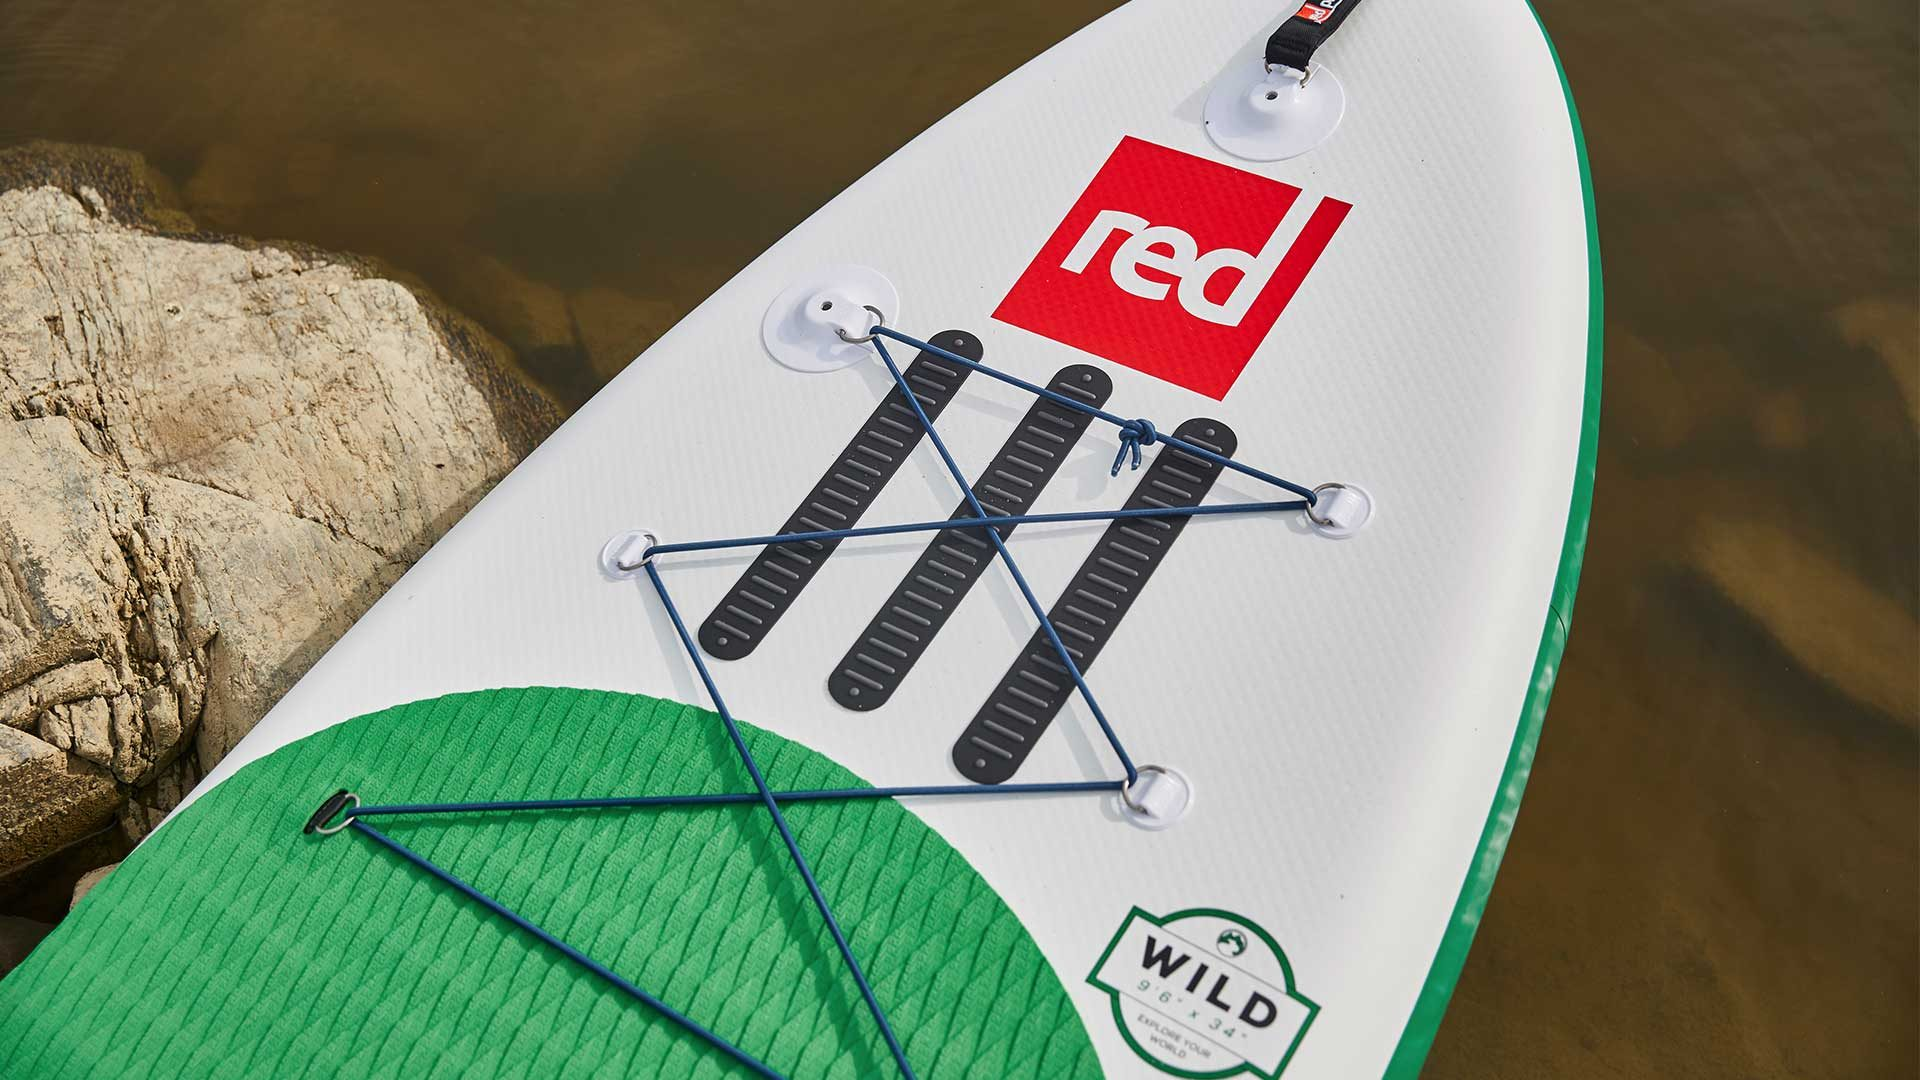 redpaddleco-96-wild-msl-inflatable-paddle-board-desktop-gallery-cargo